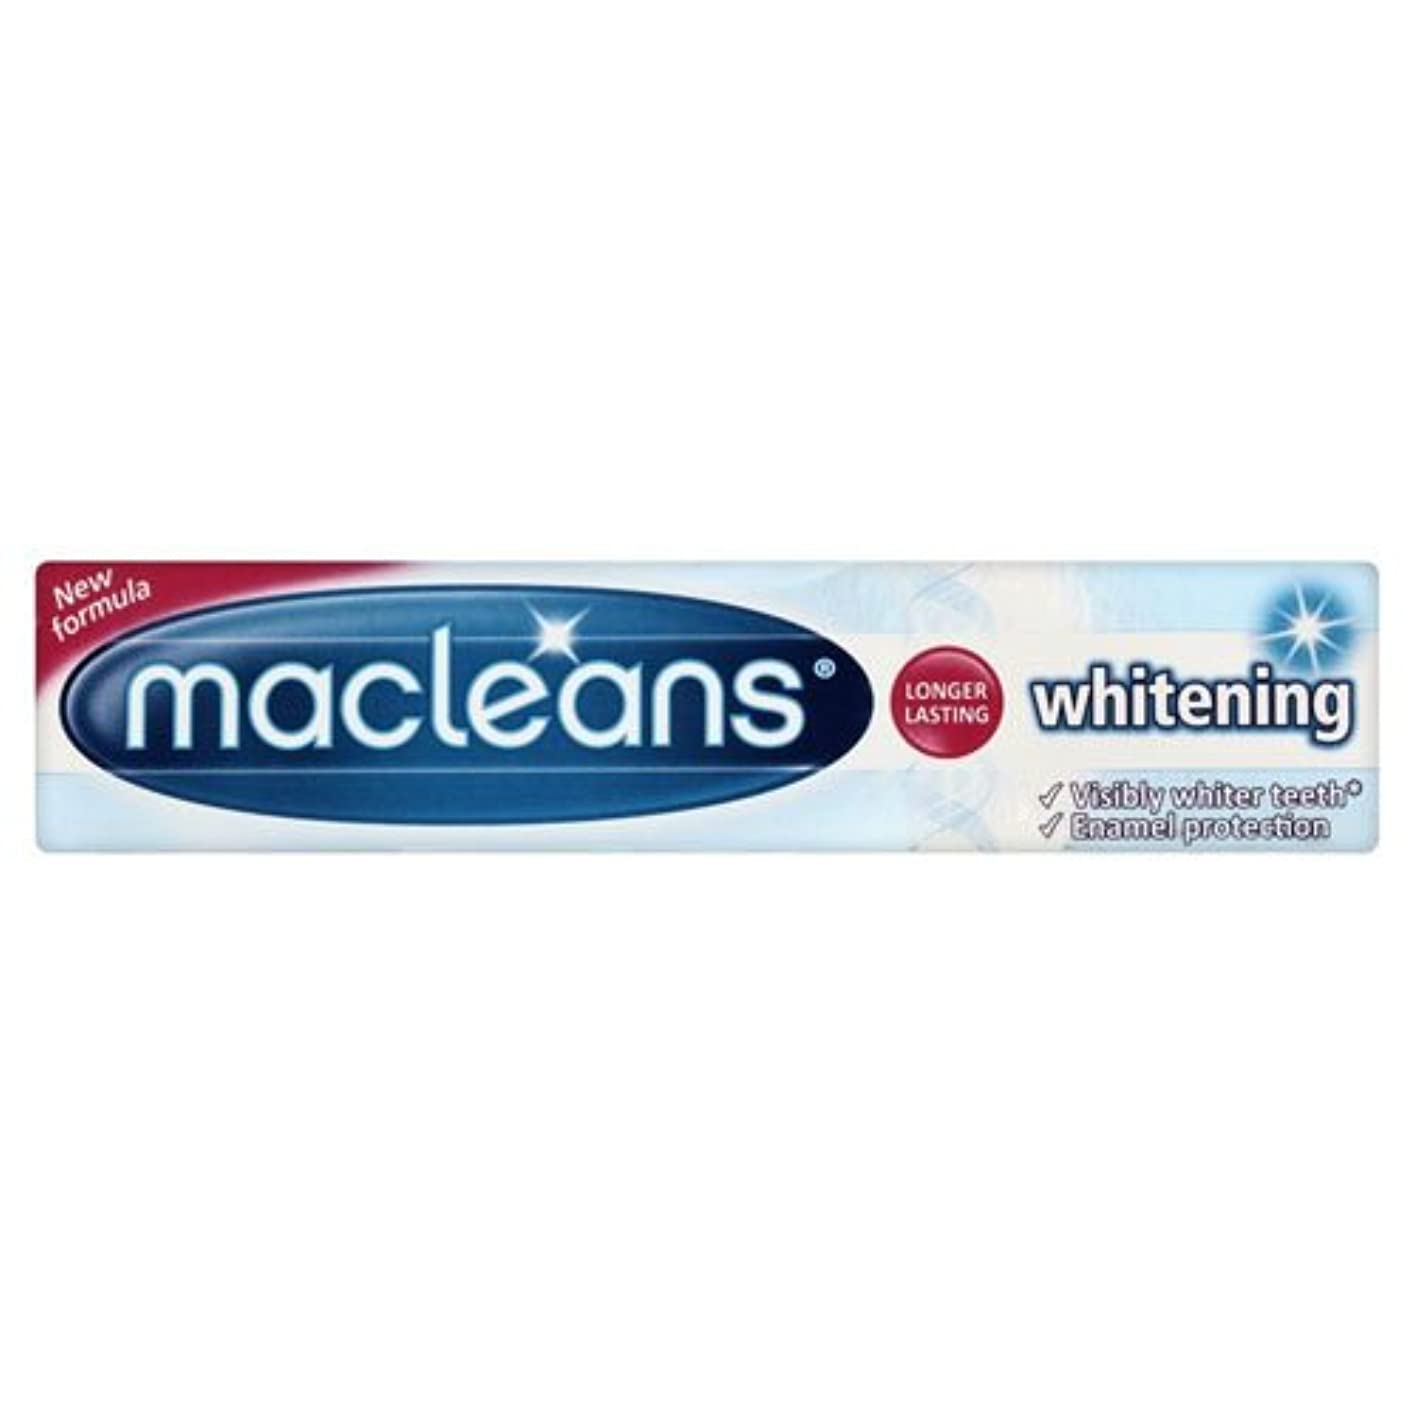 コンテンツ腸意気揚々Macleans Whitening Toothpaste Tube 100ml by Macleans